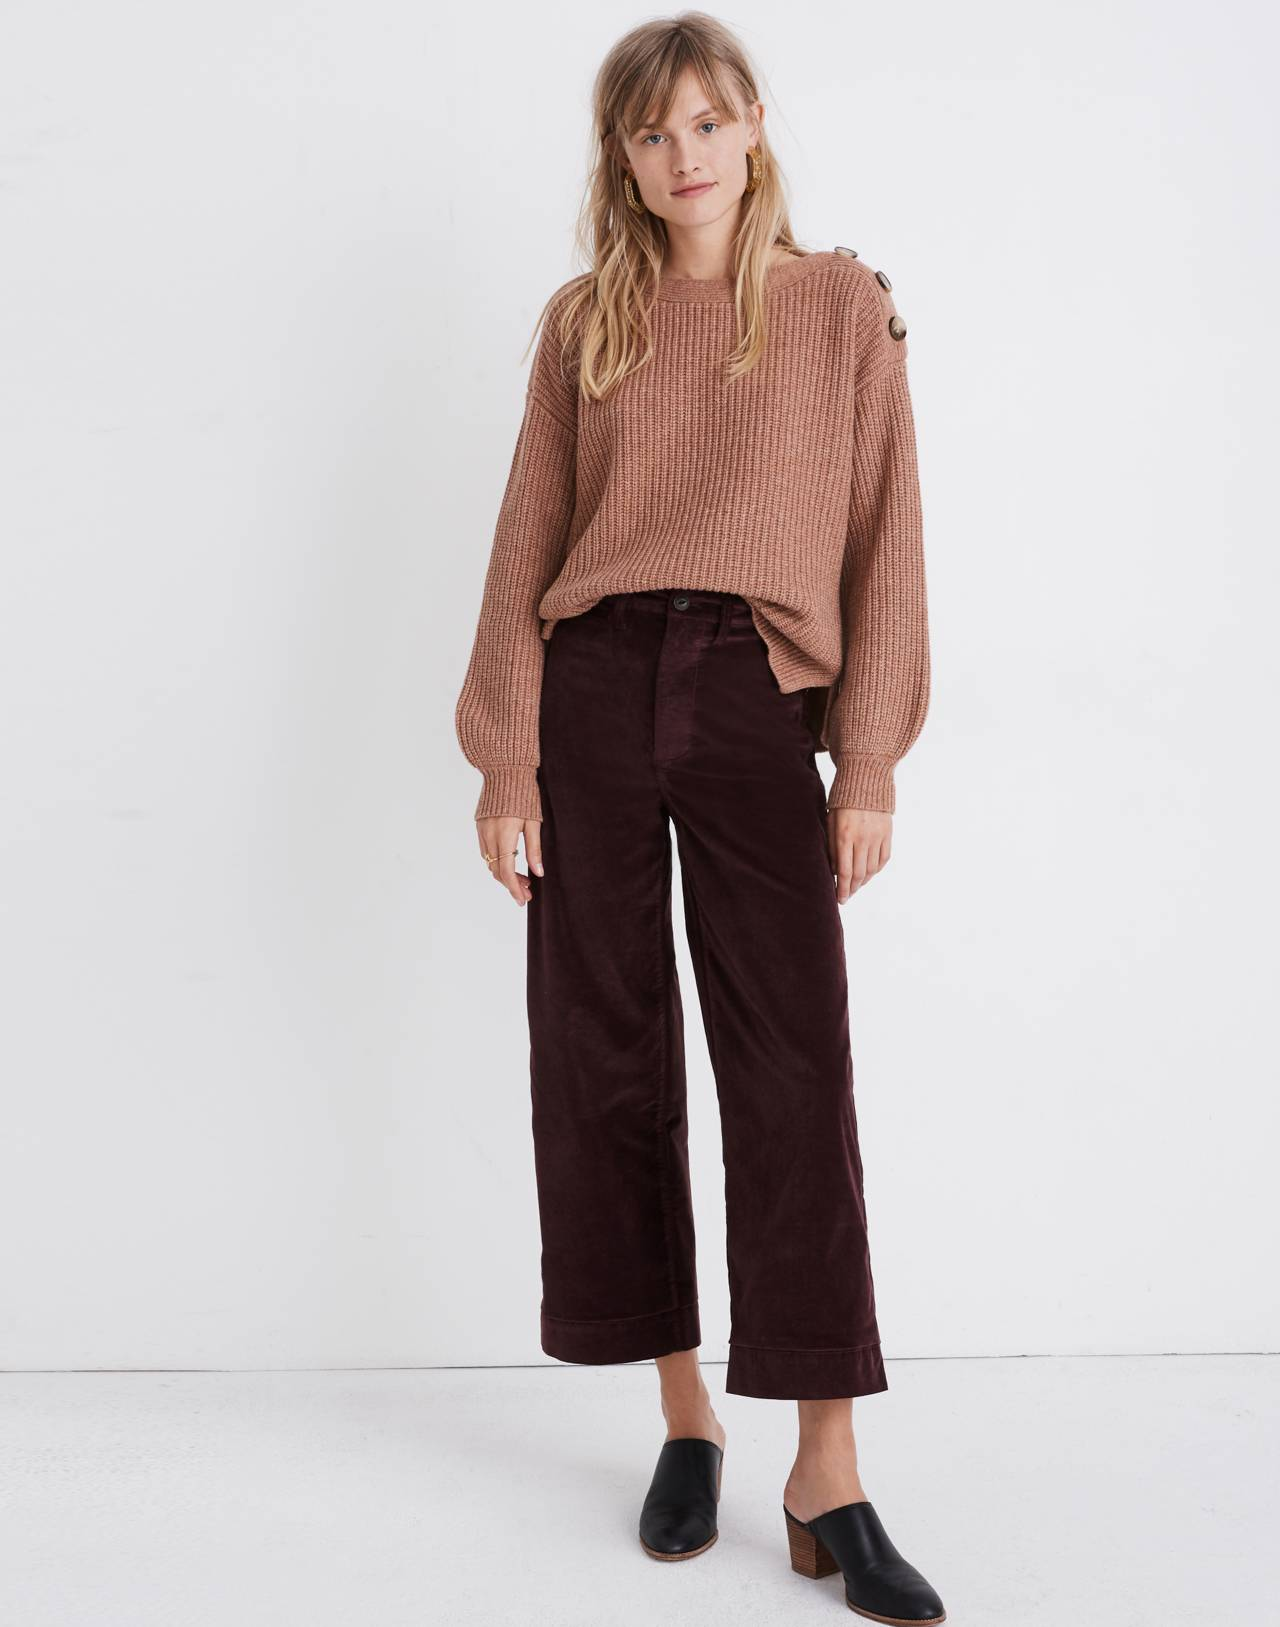 Boatneck Button-Shoulder Sweater in heather earth image 1